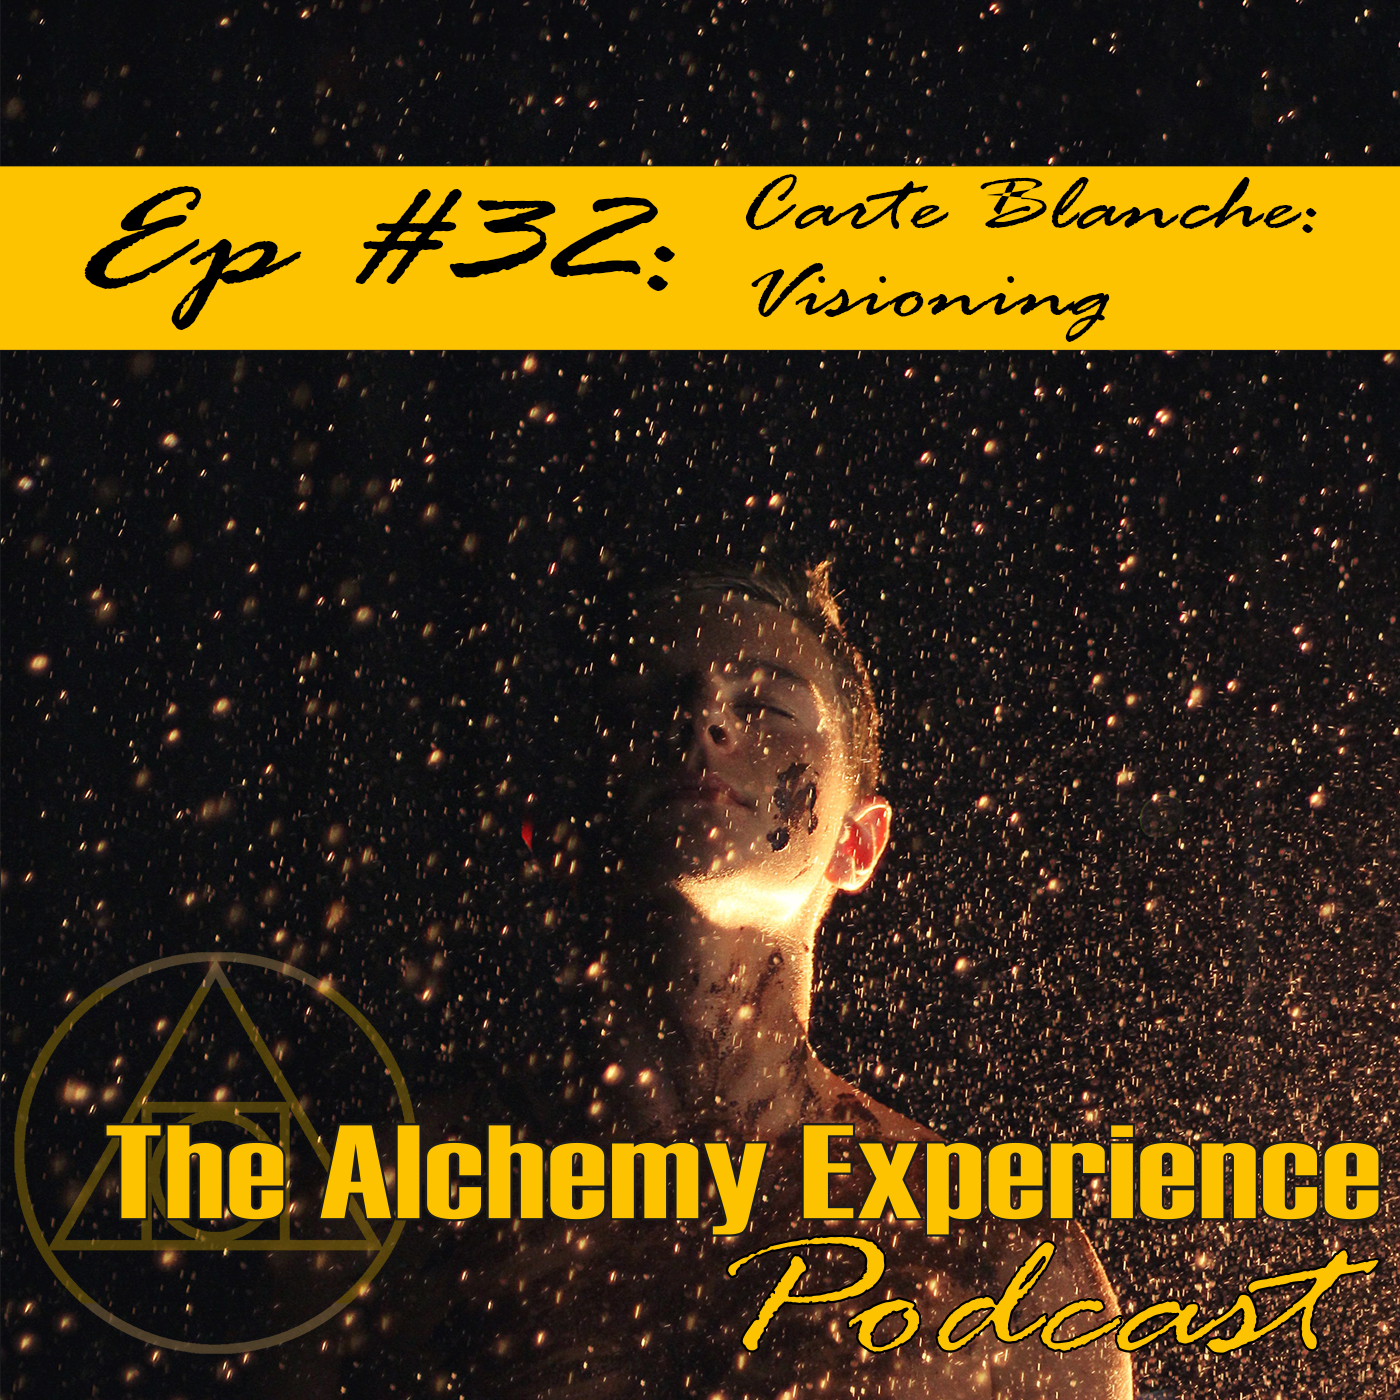 Artwork for podcast The Alchemy Experience